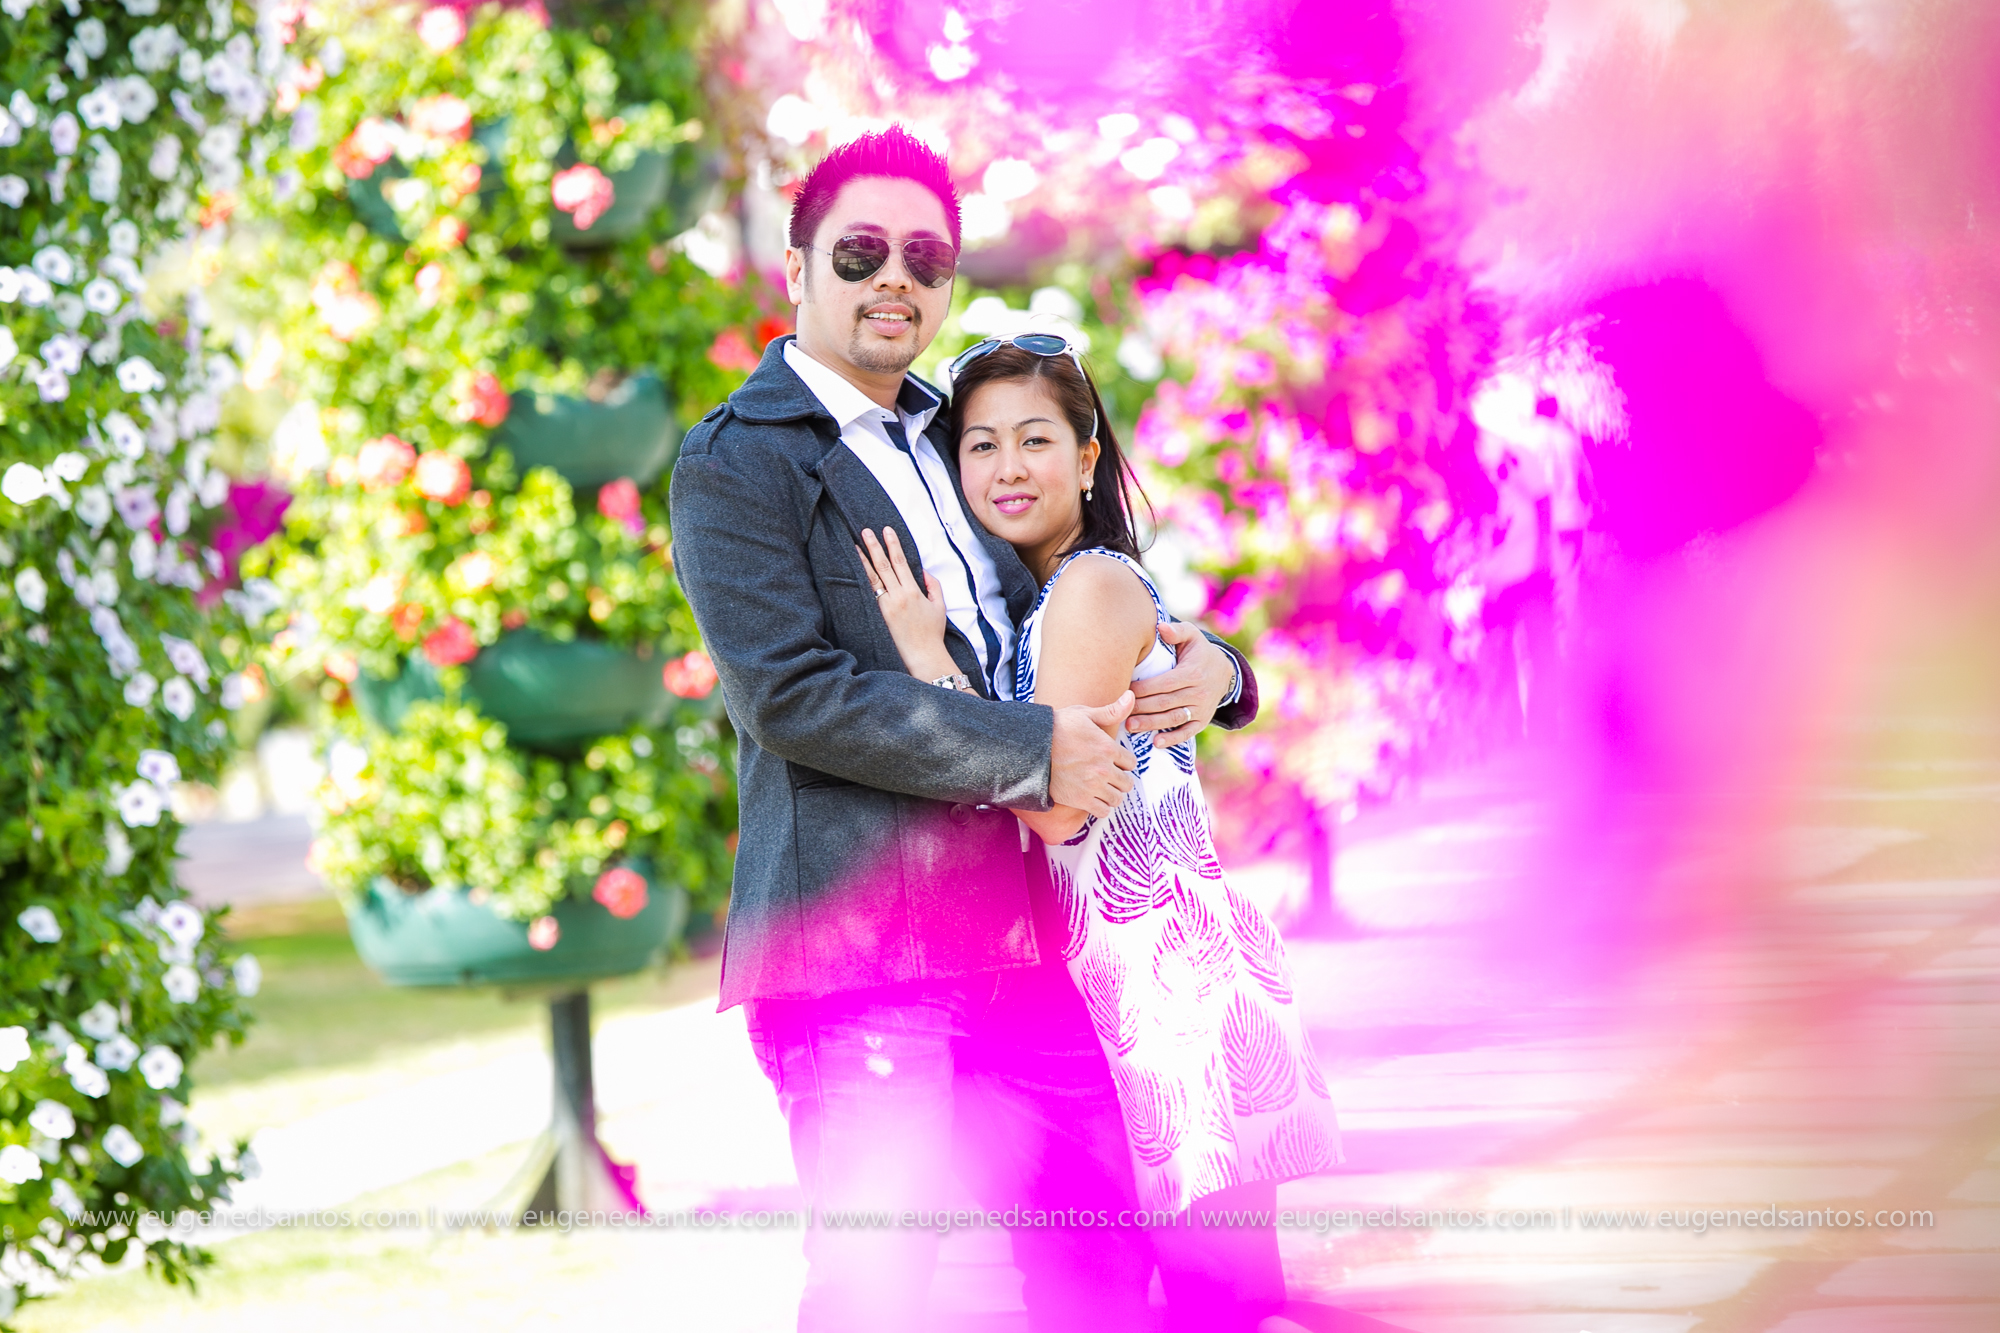 ES - Dubai Wedding Photography DR.jpg